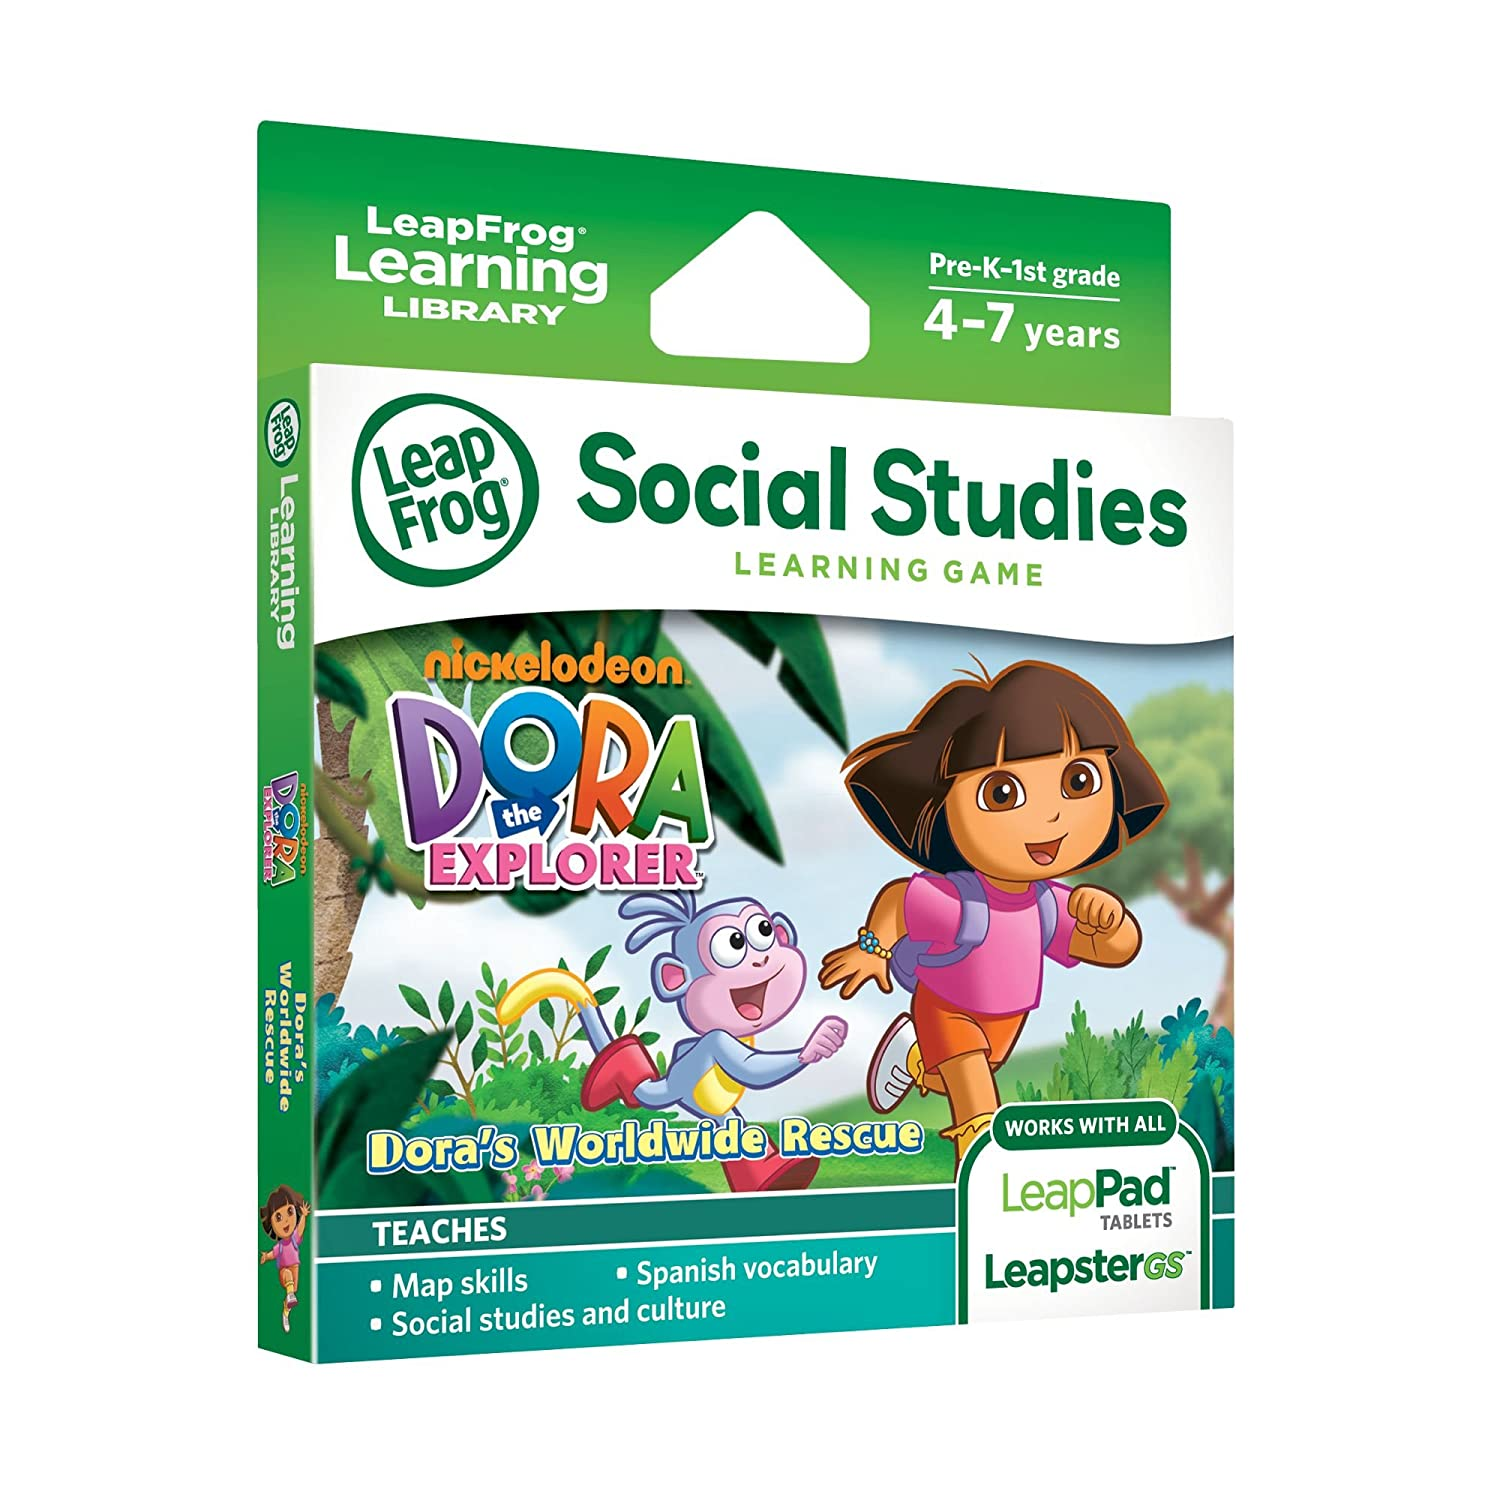 LeapFrog Dora the Explorer Learning Game works with LeapPad Tablets and LeapsterGS